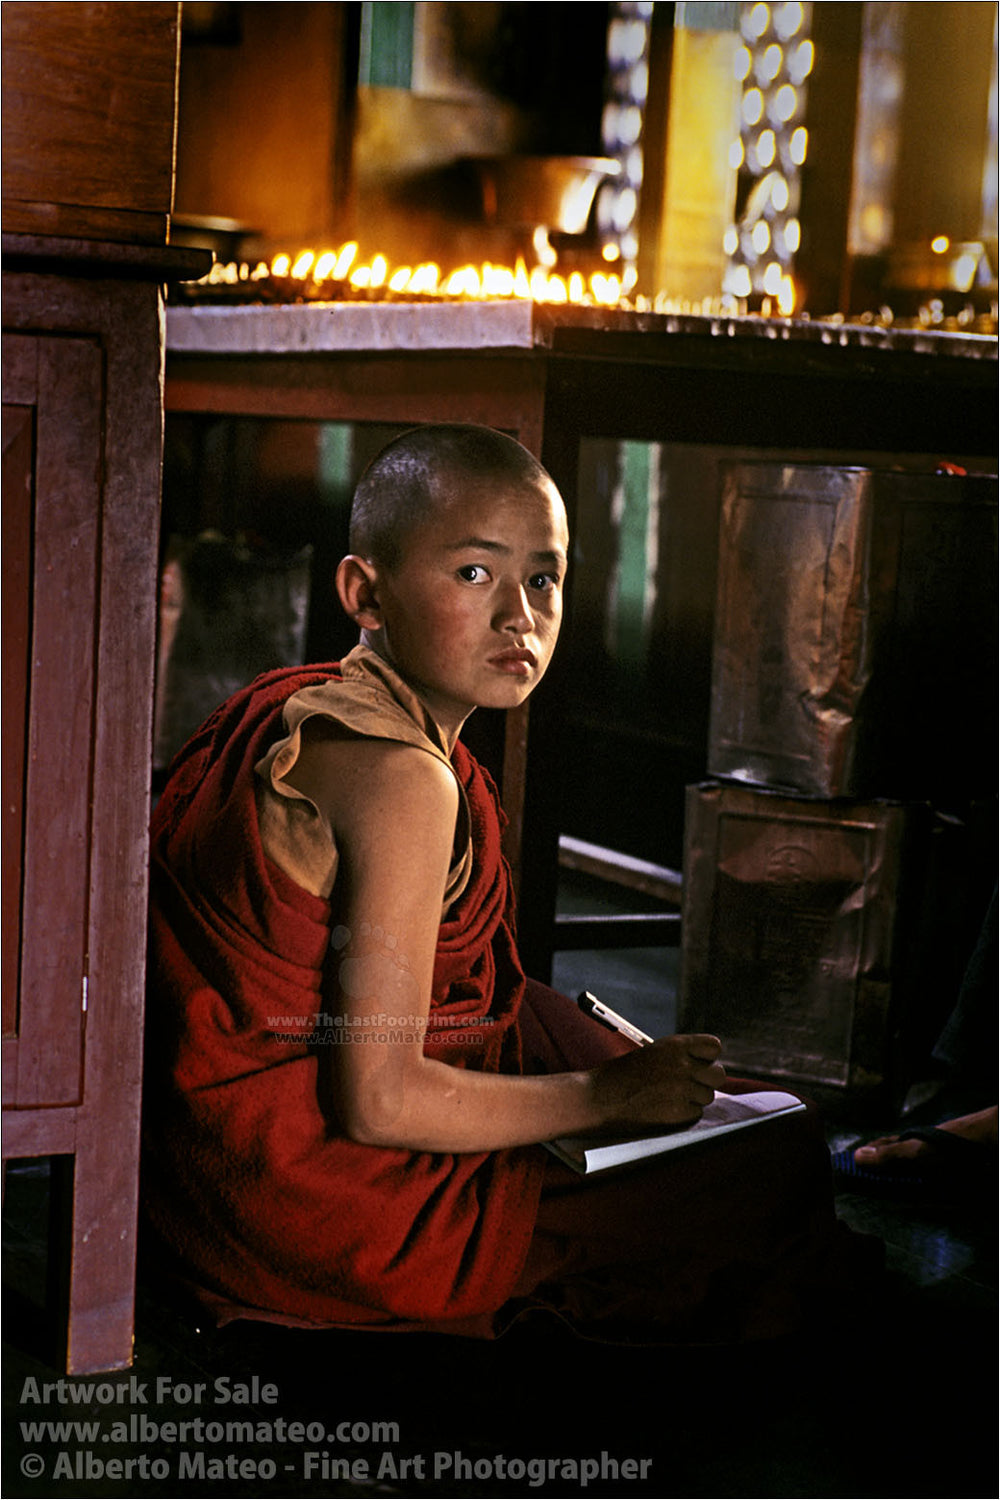 Monk Child doing homework, Swayambunath, Kathmandu. | Open Edition Fine Art Print.